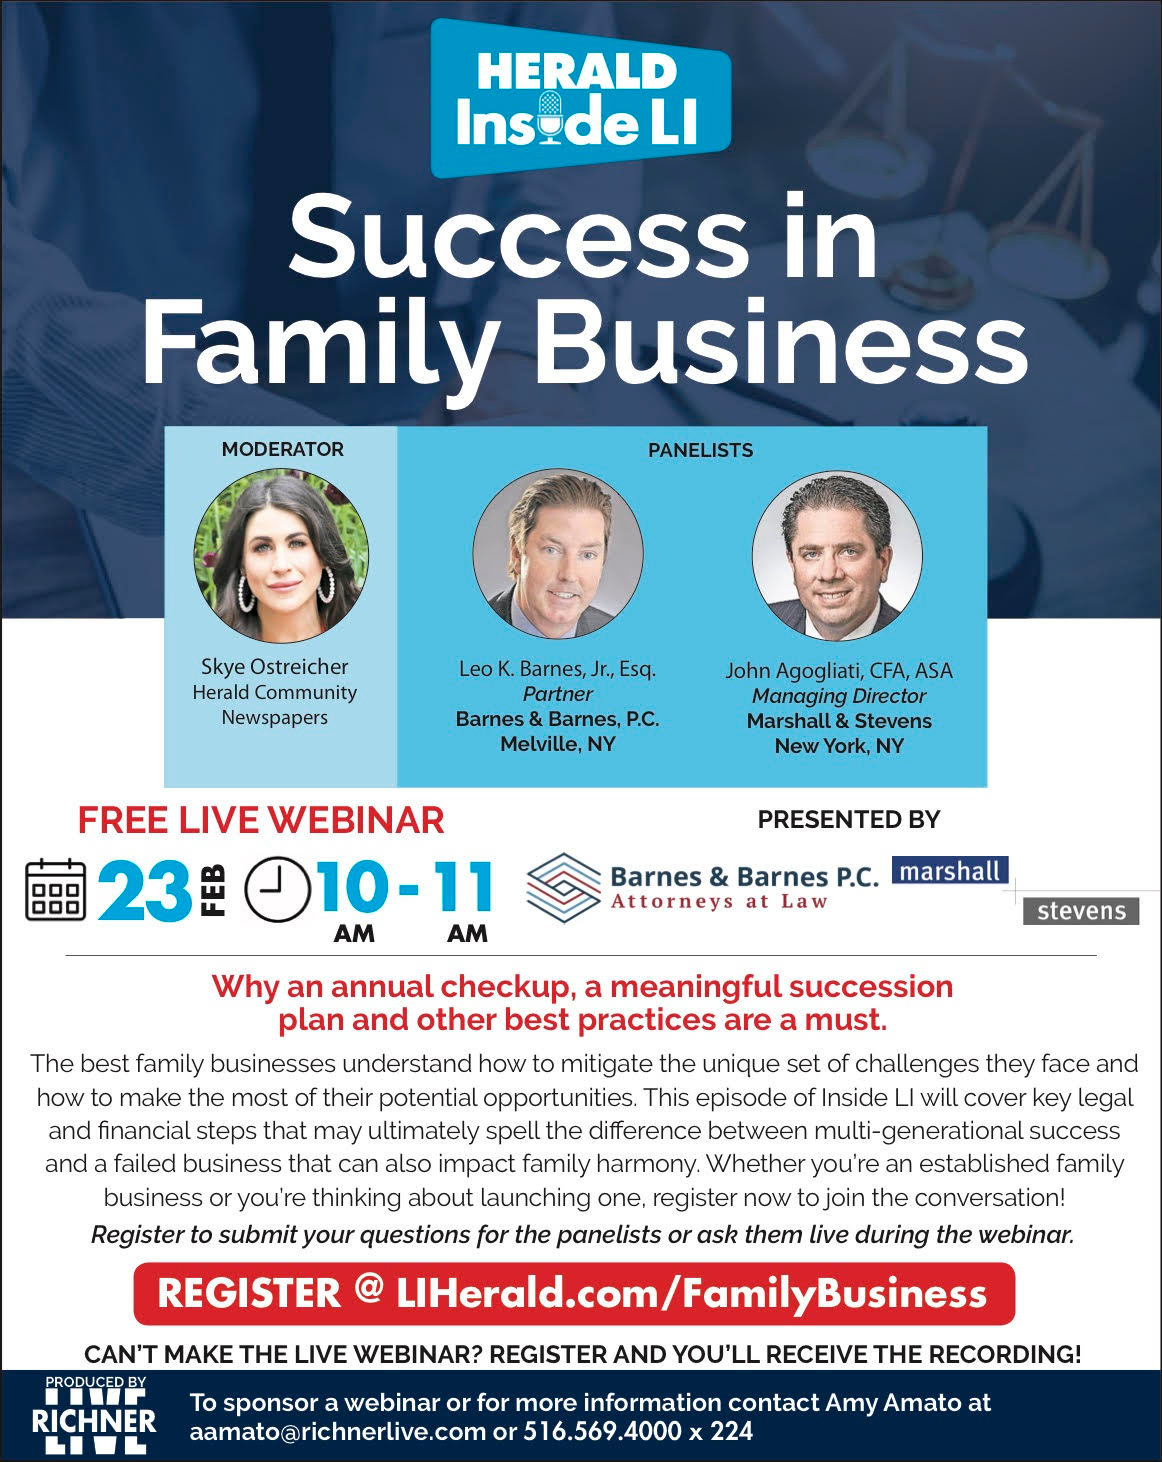 Herald Inside LI will host a webinar on how to find success in family business Feb. 23 at 10 a.m.